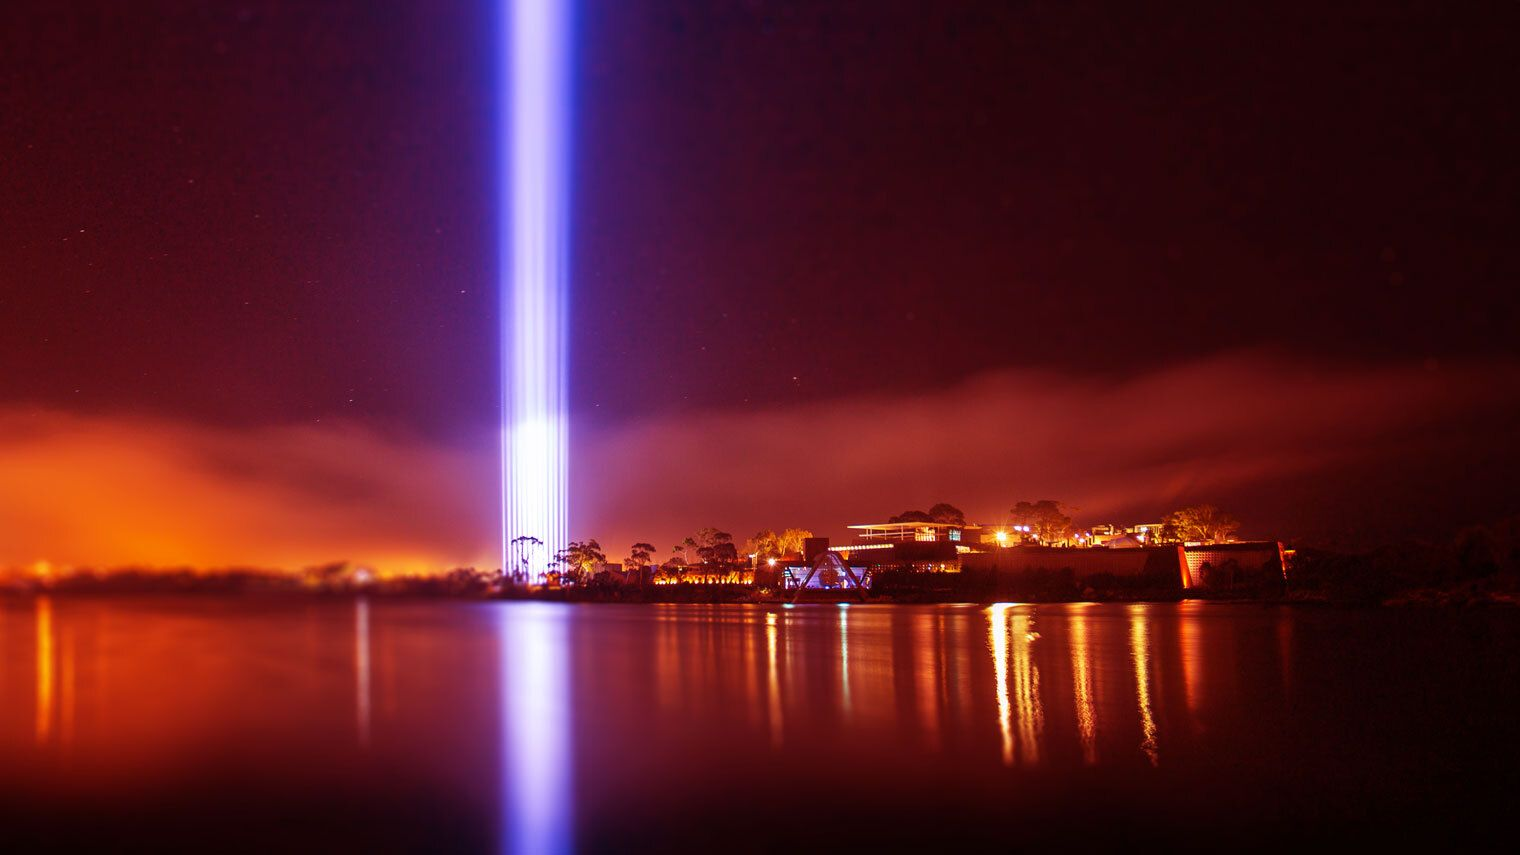 A great pillar of light reaching into the night sky, being reflected onto the Derwent River.